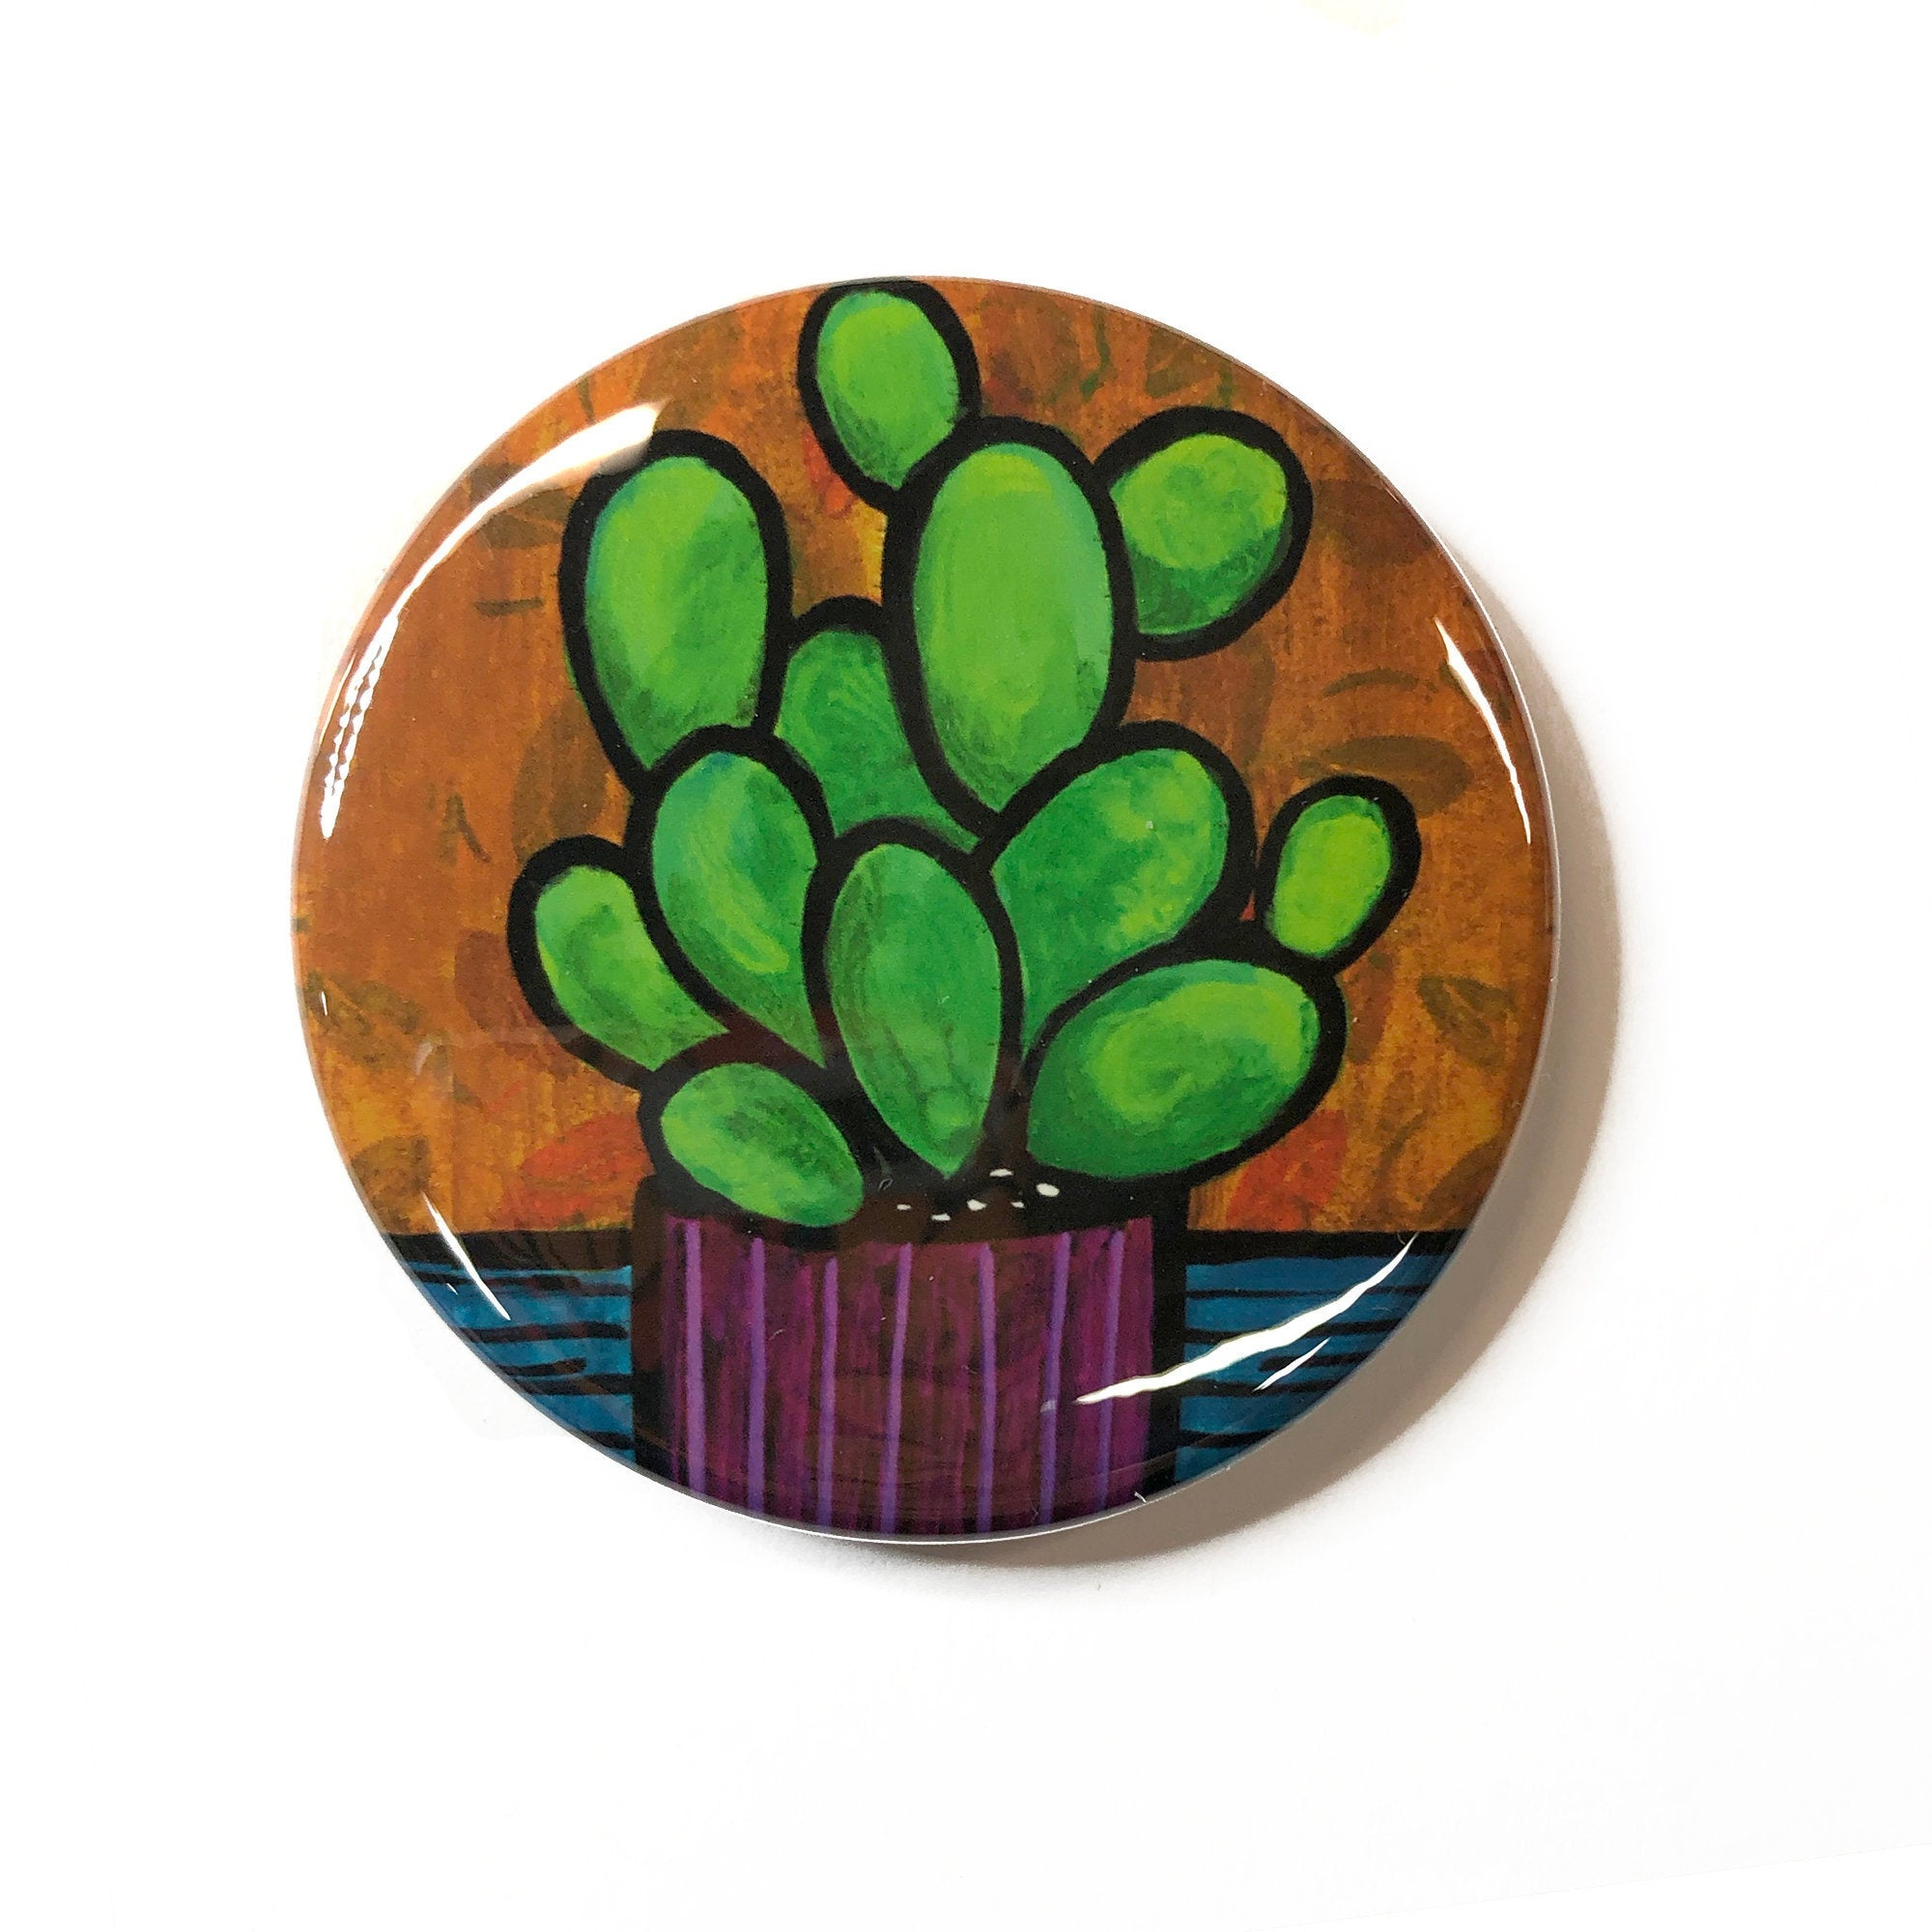 Cactus Magnet, Pin Back Button, or Pocket Mirror - 1 inch, 1 1/4 inch, 2 1/4 inch - Succulent Lover Gift, Cactus Plant